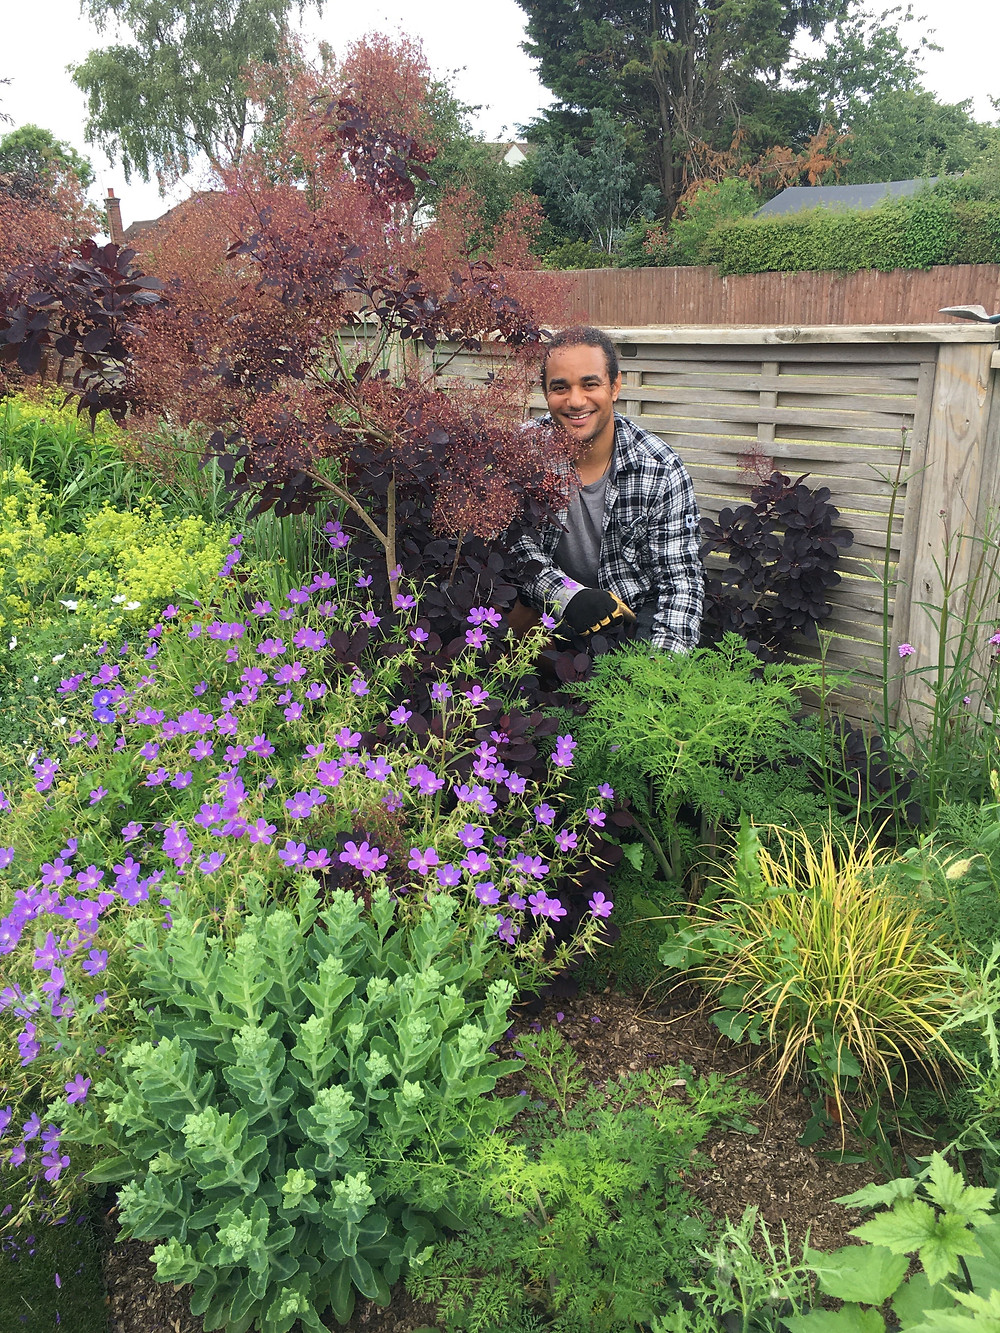 Joshua Allen, Liberty's Growing and Relationship Manager and horticultural expert, amongst some things he's grown: shrubbery, flowers, crops.